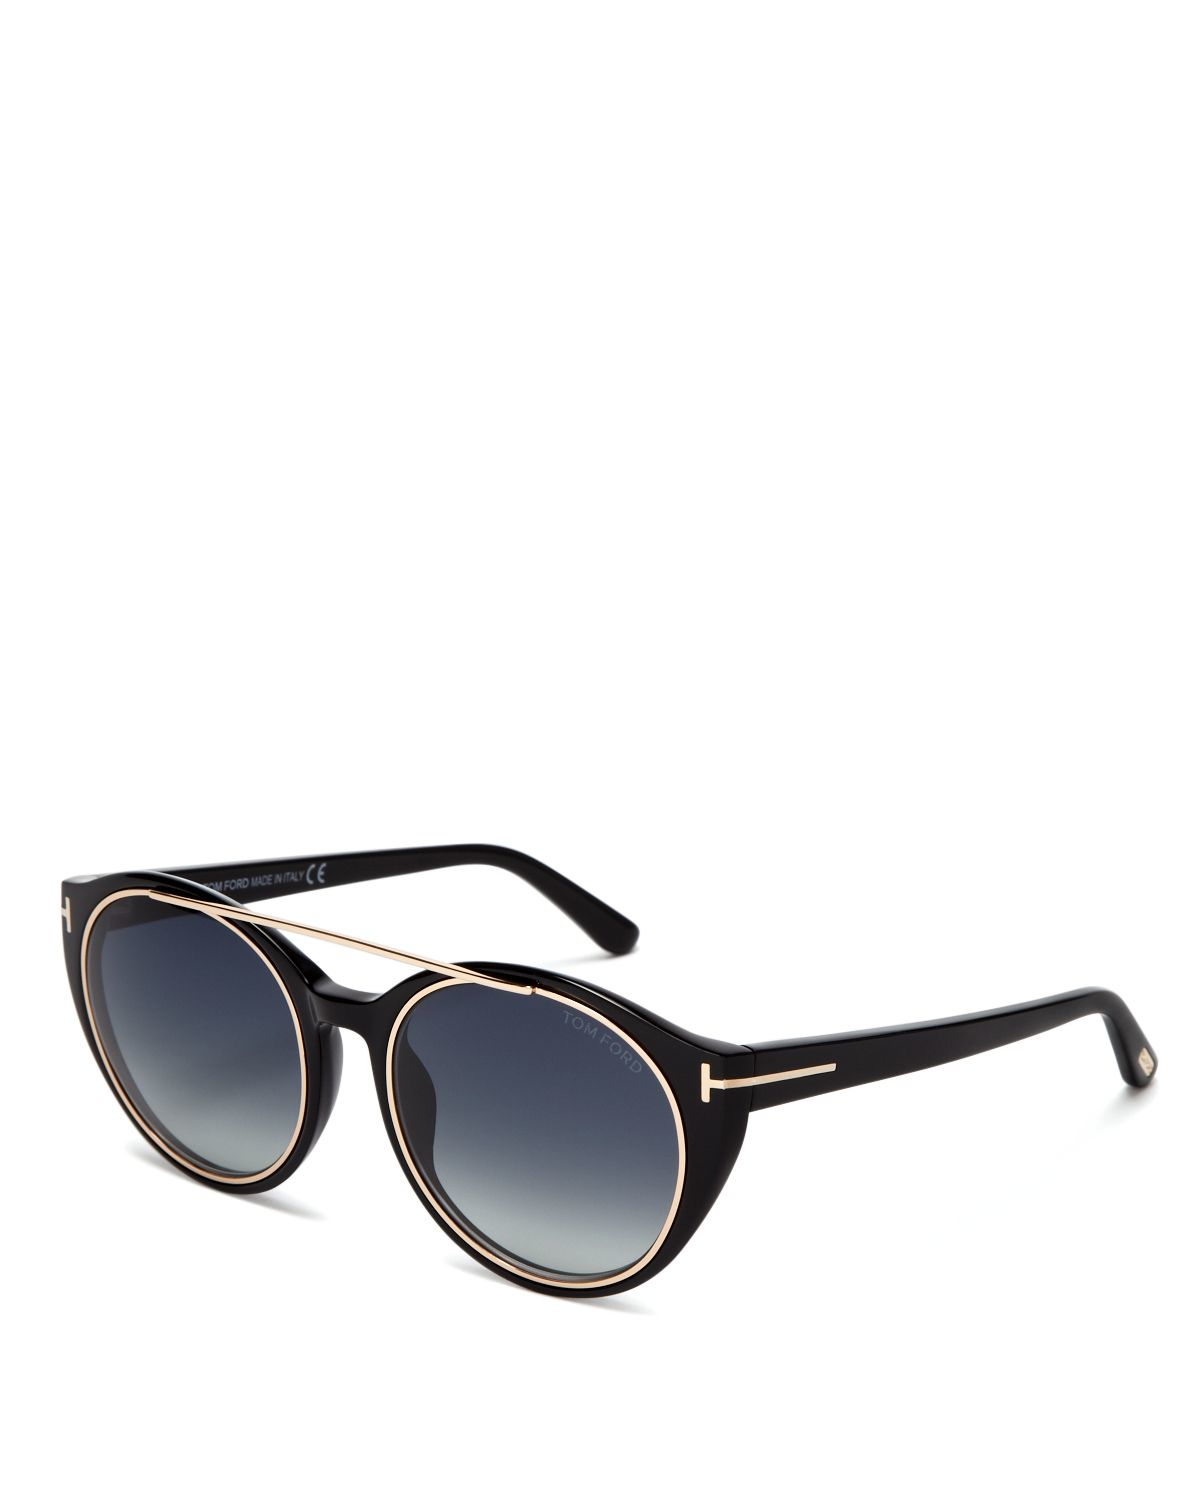 Wills Point Ford >> Lyst - Tom ford Joan Round Sunglasses, 52mm in Black